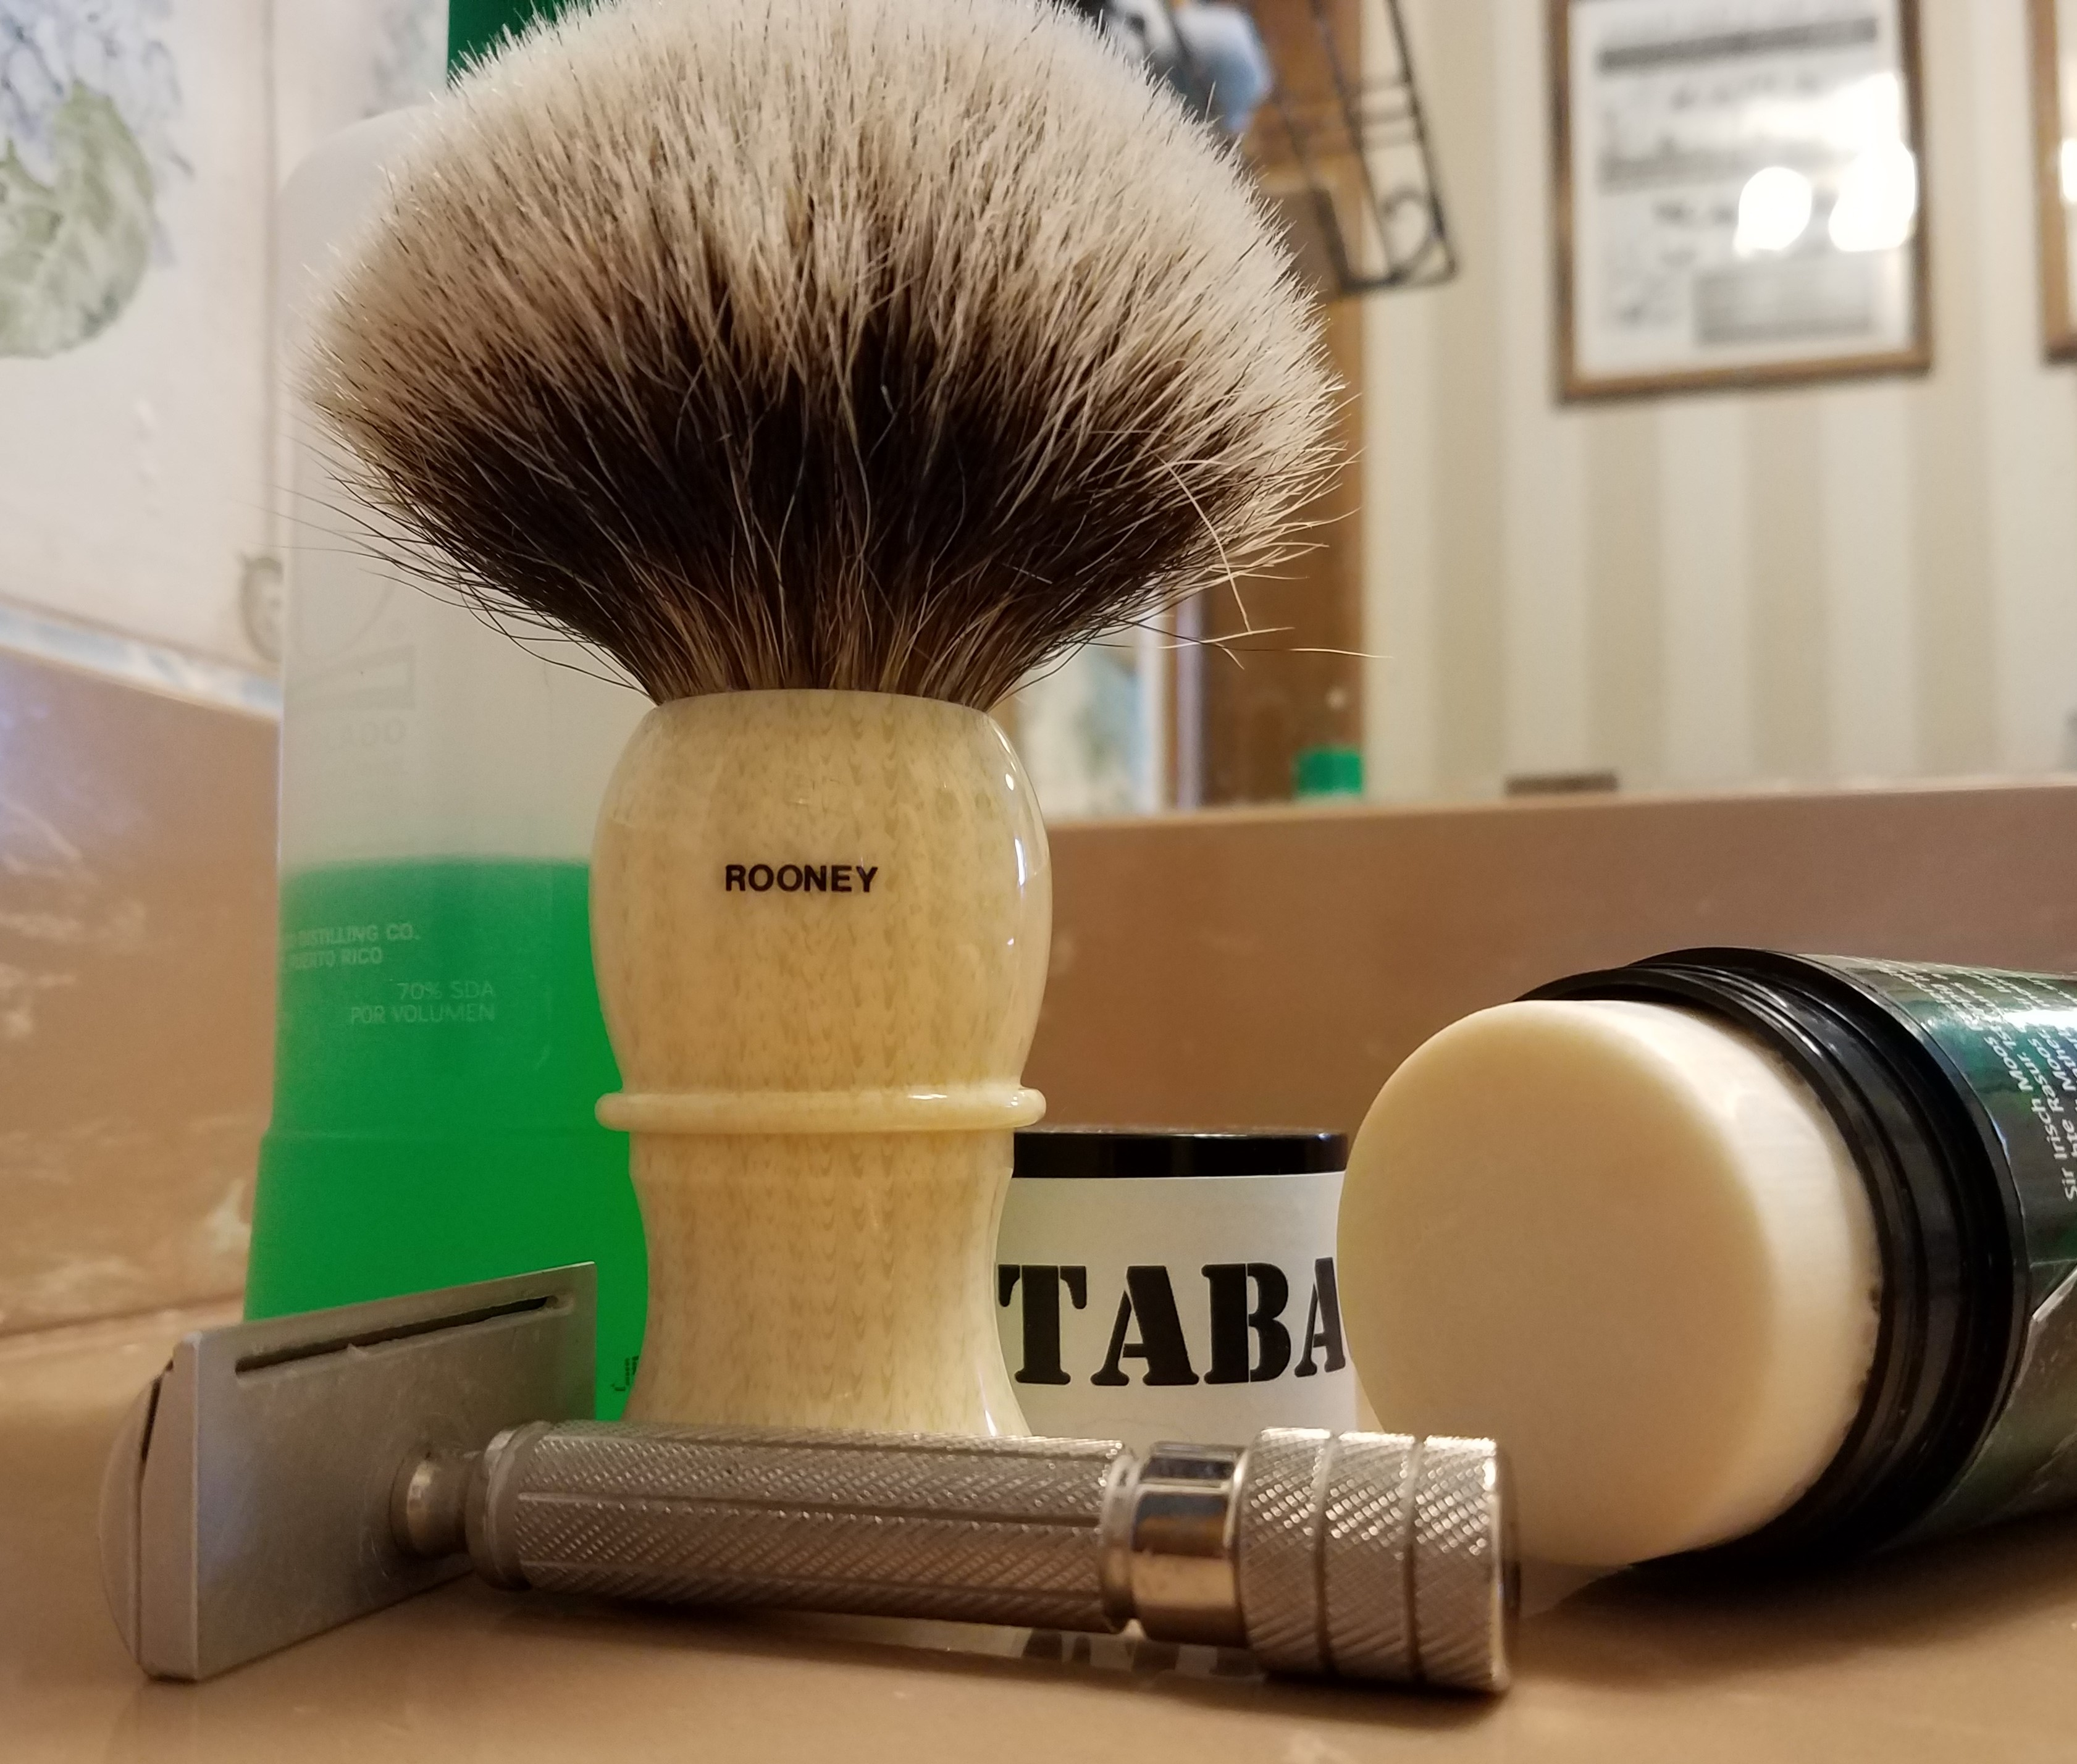 SOTD Rooney Finest Tabac 22OCT2018.jpg